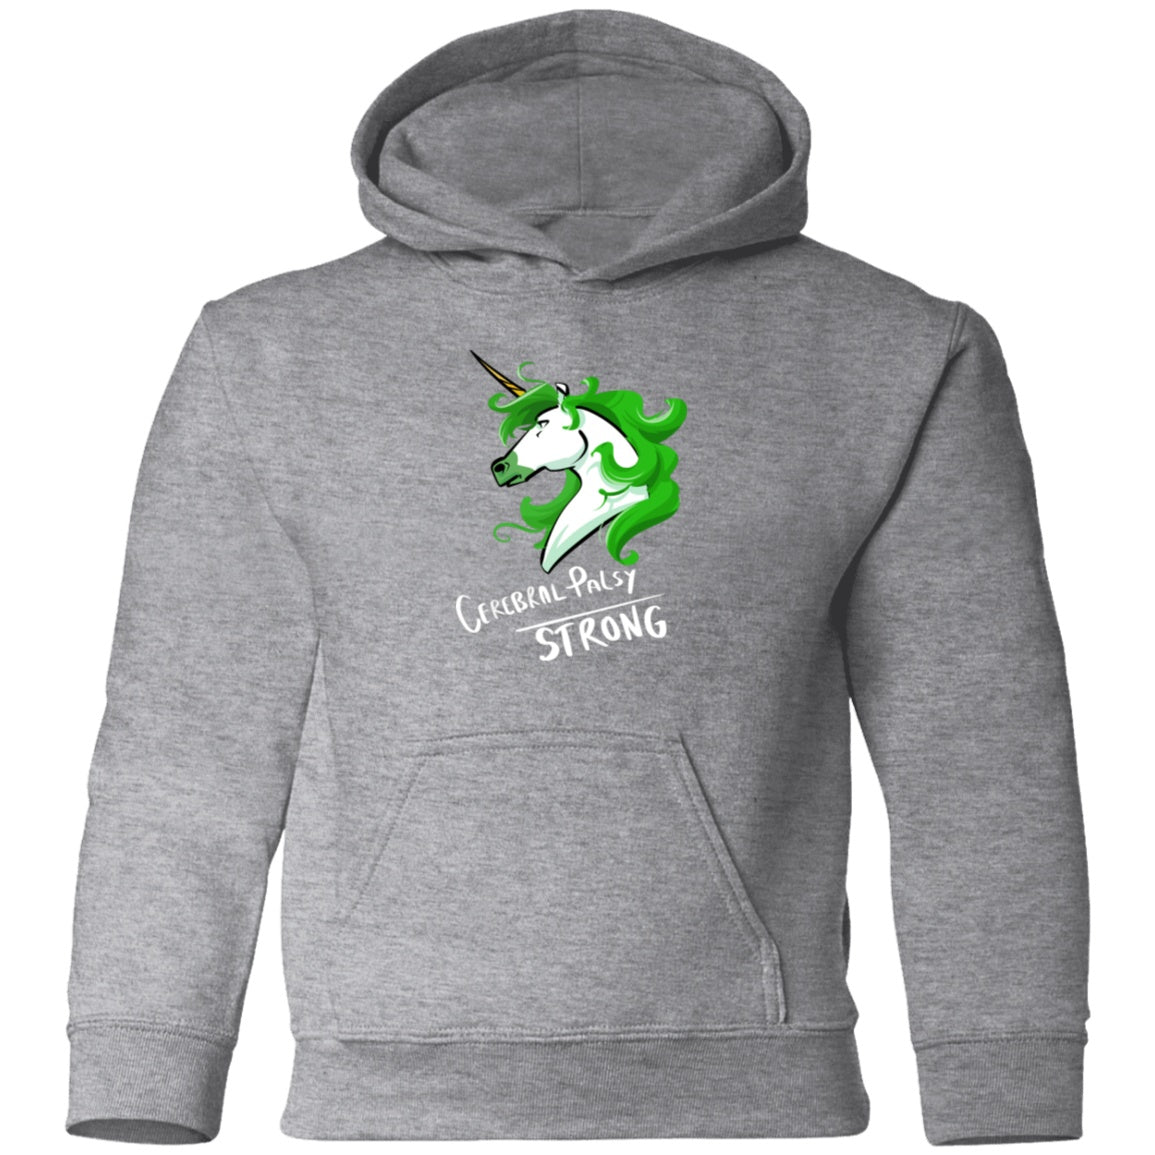 Cerebral Palsy Strong Unicorn Toddler Pullover Hoodie - The Unchargeables